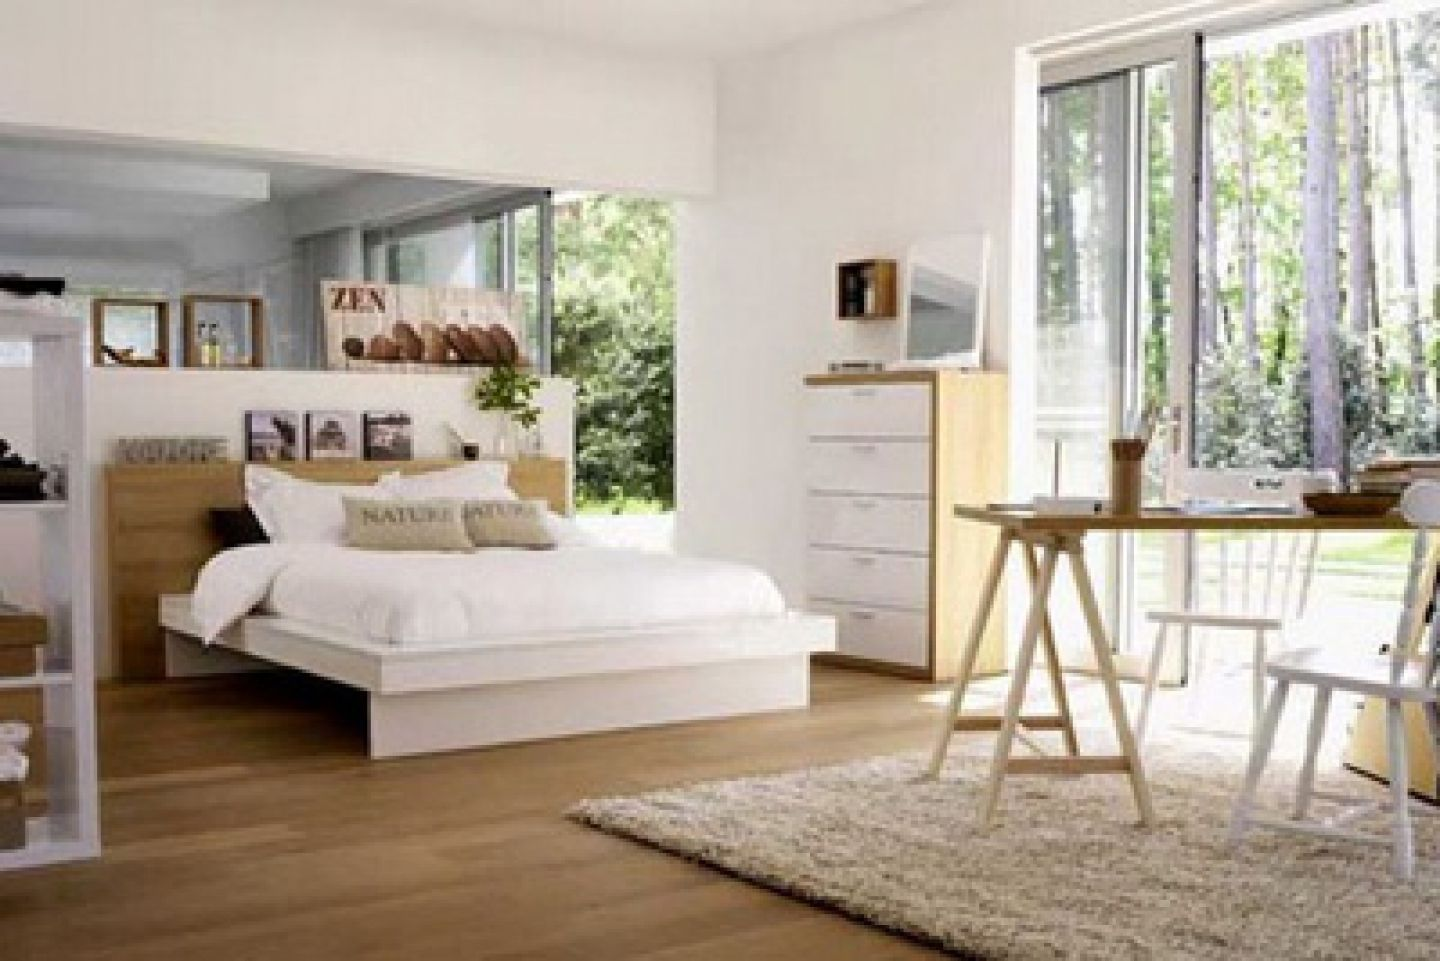 Candice Olson Designs Bedroom Gorgeous Wowthis Is The Third Contemporary Decor I've Seen Candice Doi Design Decoration